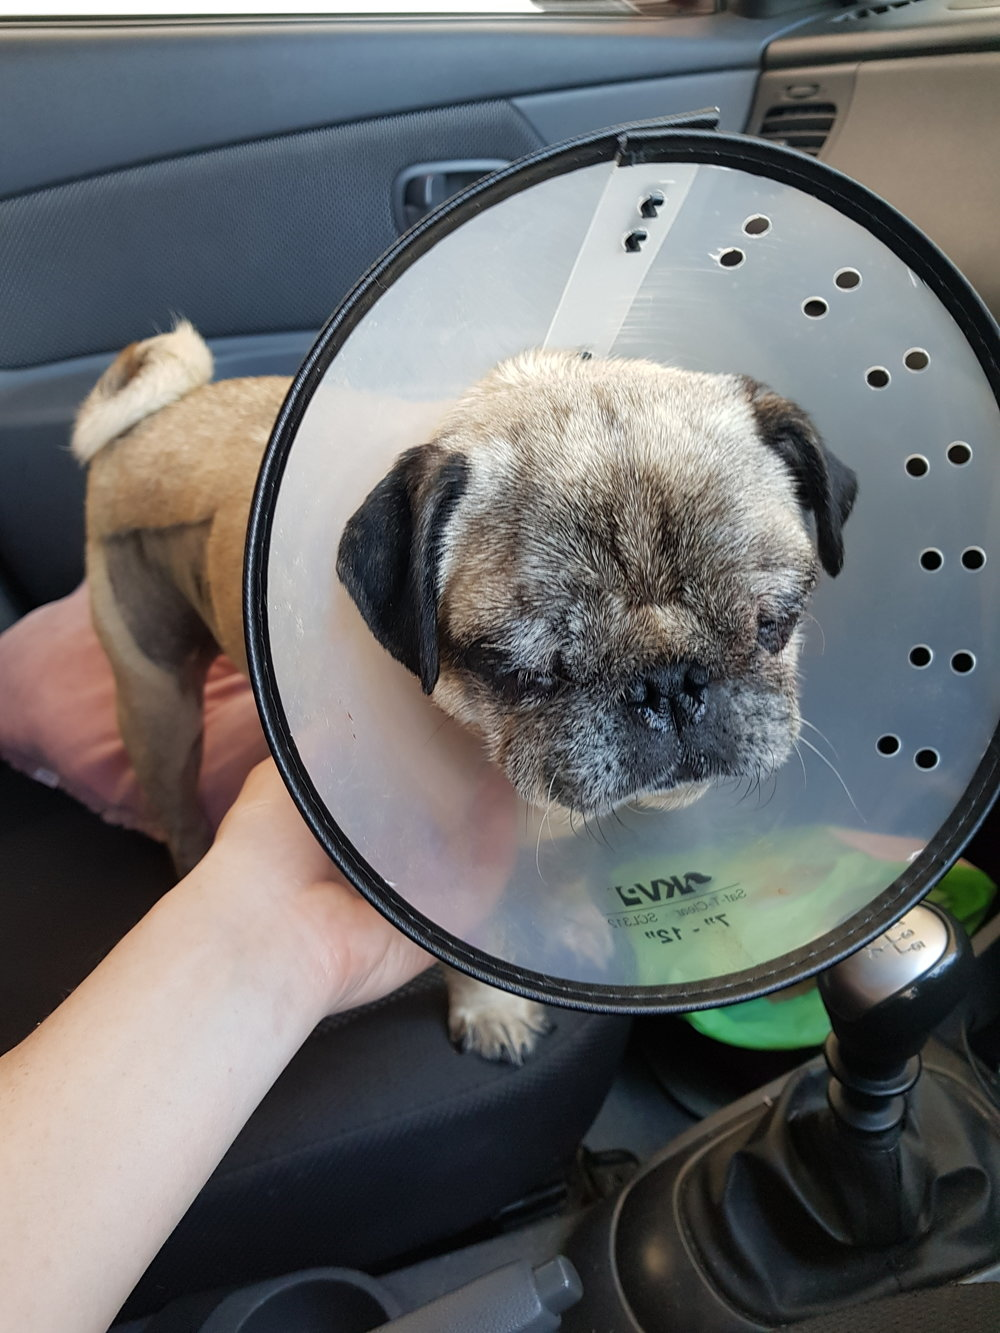 Leaving Melbourne Eye Vet after the operation - eyes stitched closed for 1 week to protect them as they heal.